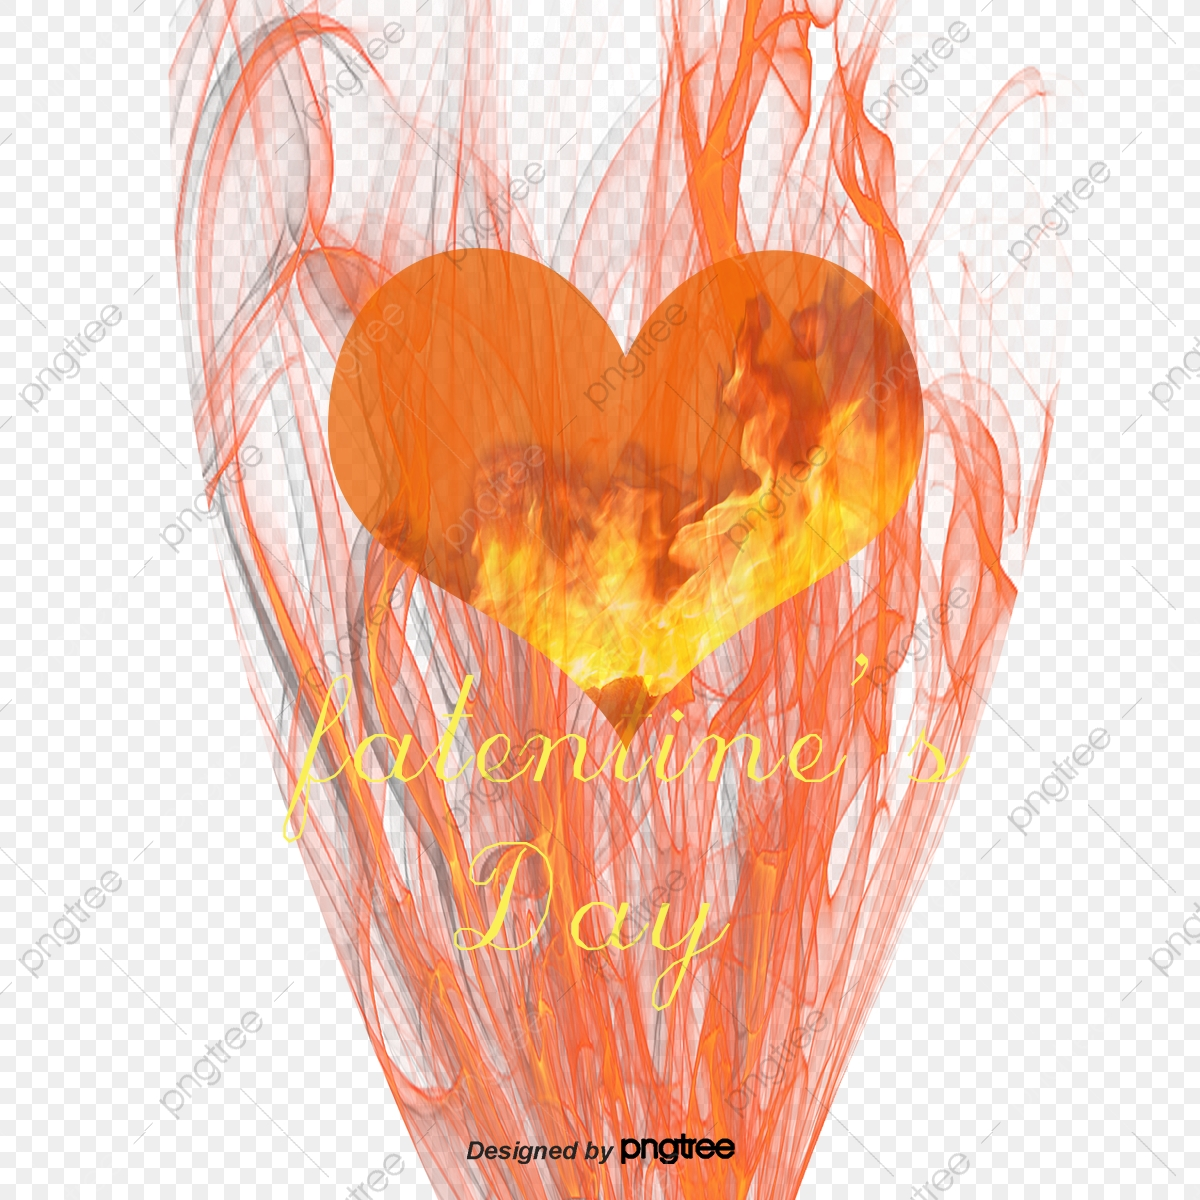 Burning Heart Shaped Flame, Flame Clipart, Heart Shaped, Burning.